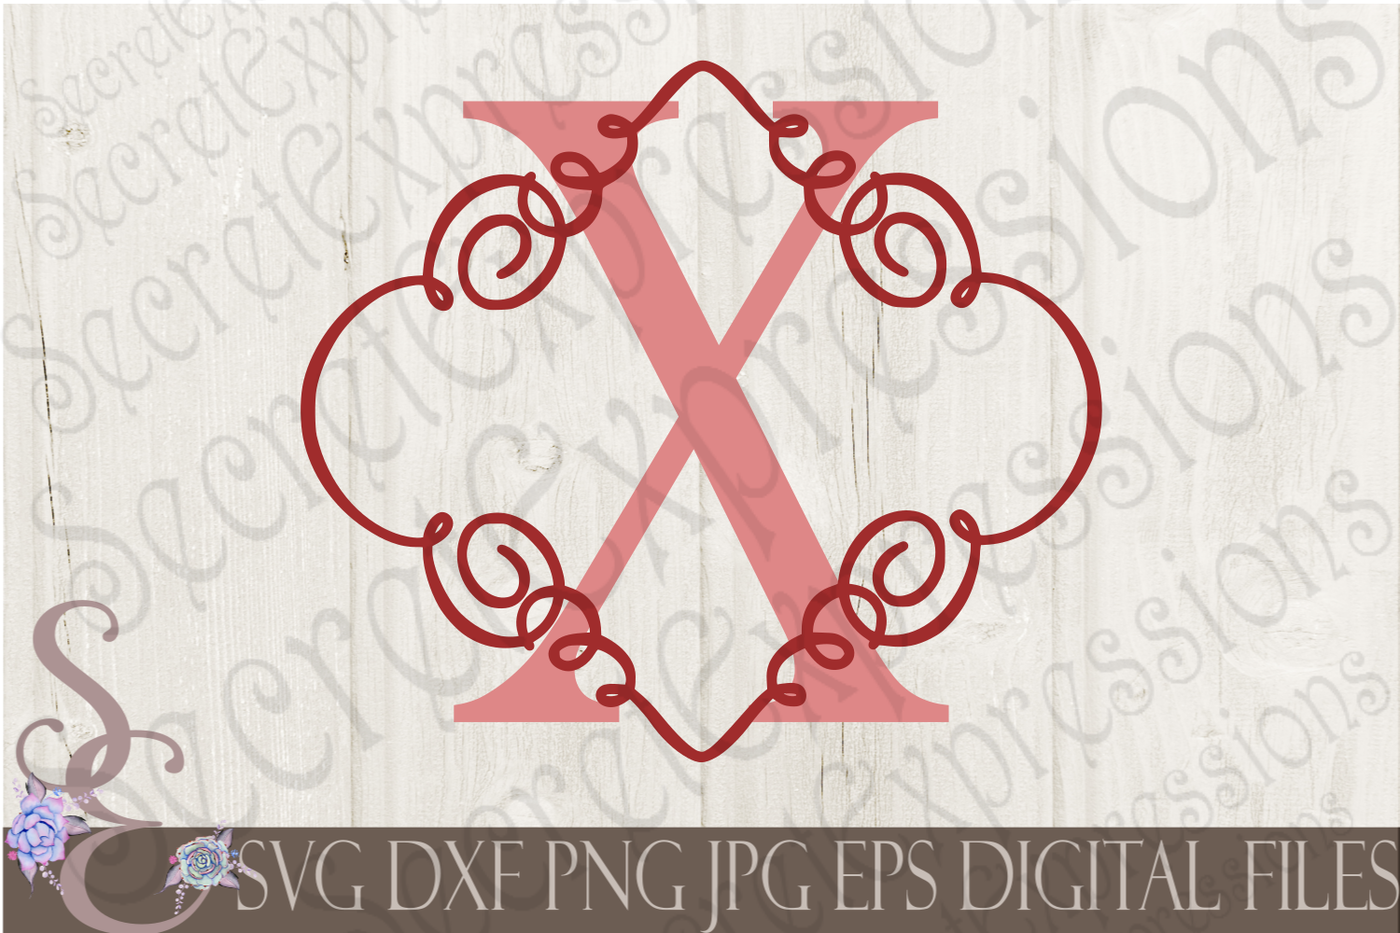 Letter X Initial Swirl Border Monogram Svg By Secretexpressionssvg